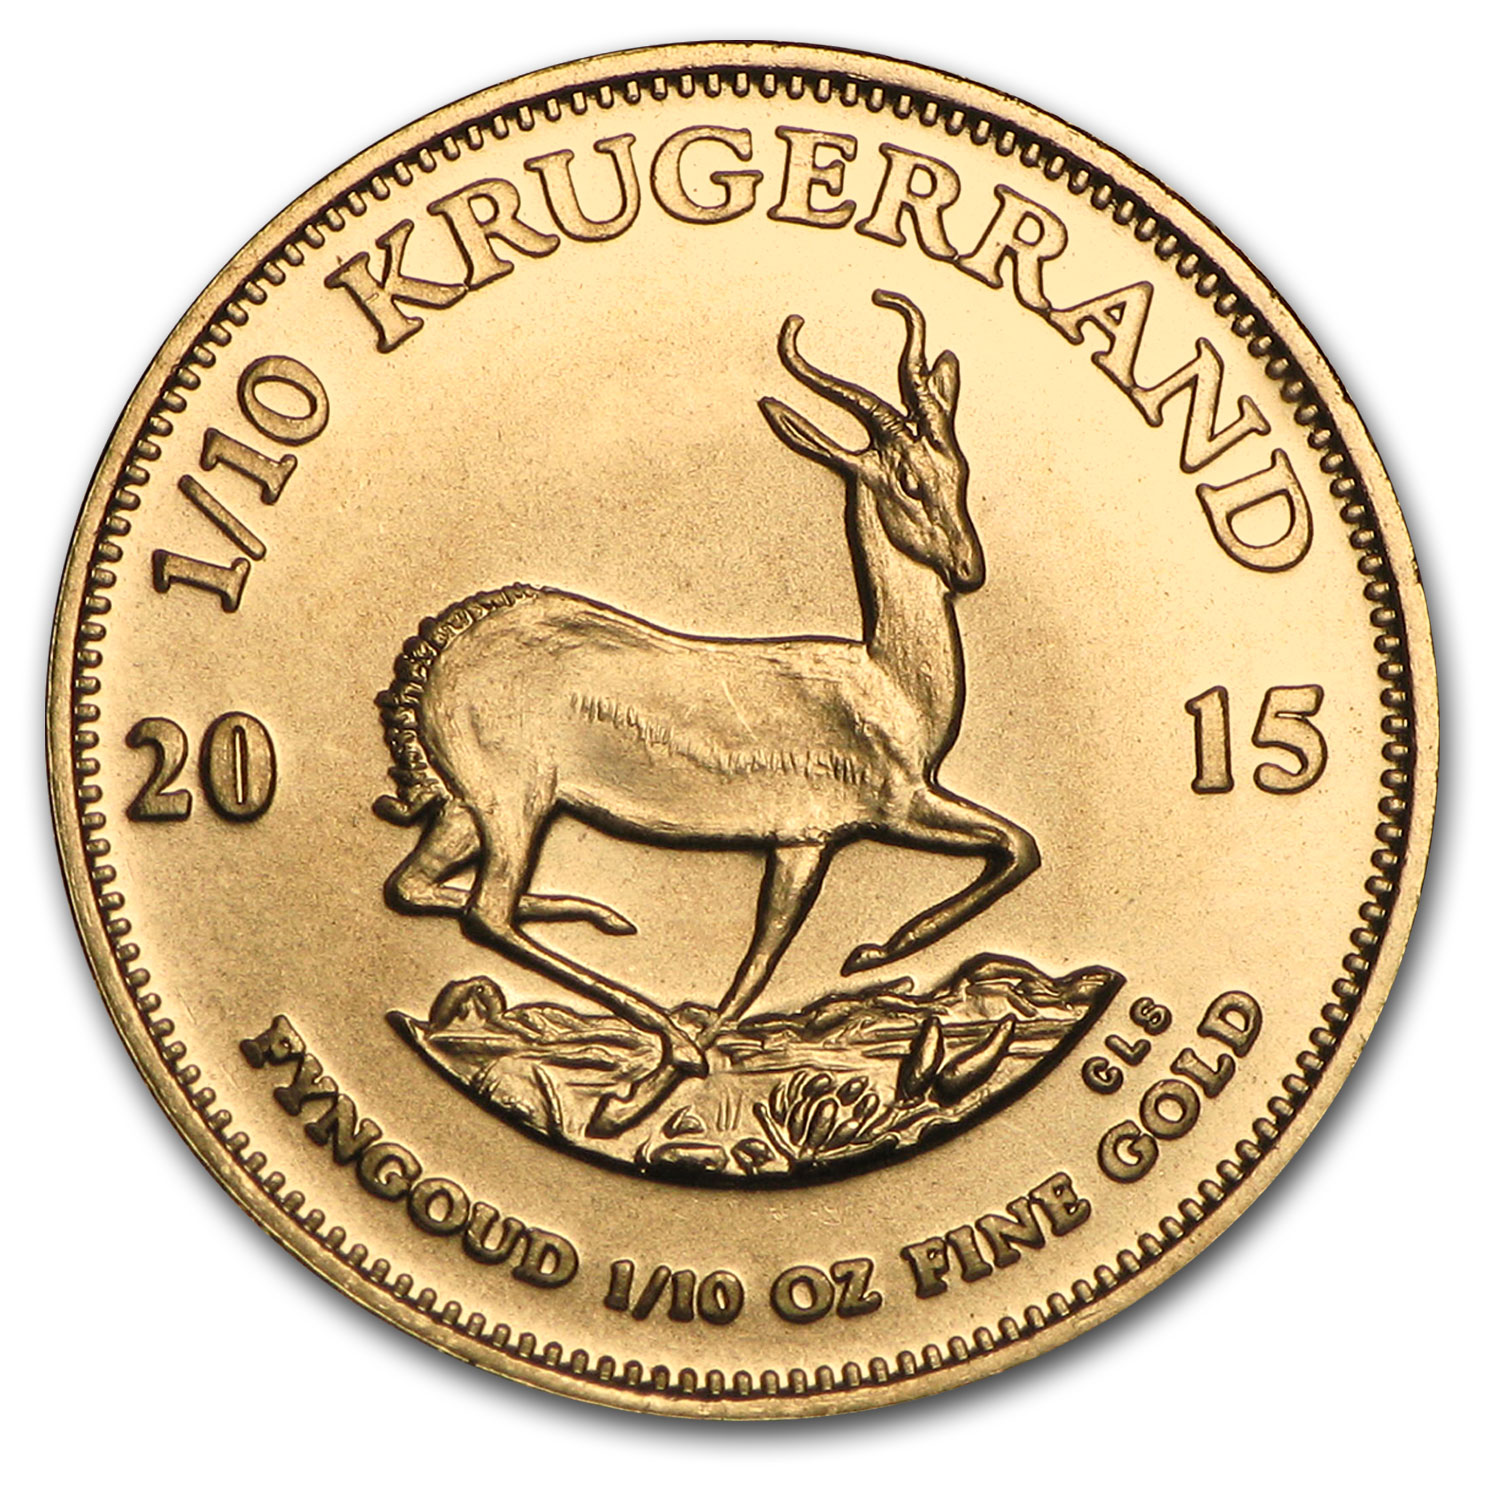 2015 South Africa 1/10 oz Gold Krugerrand